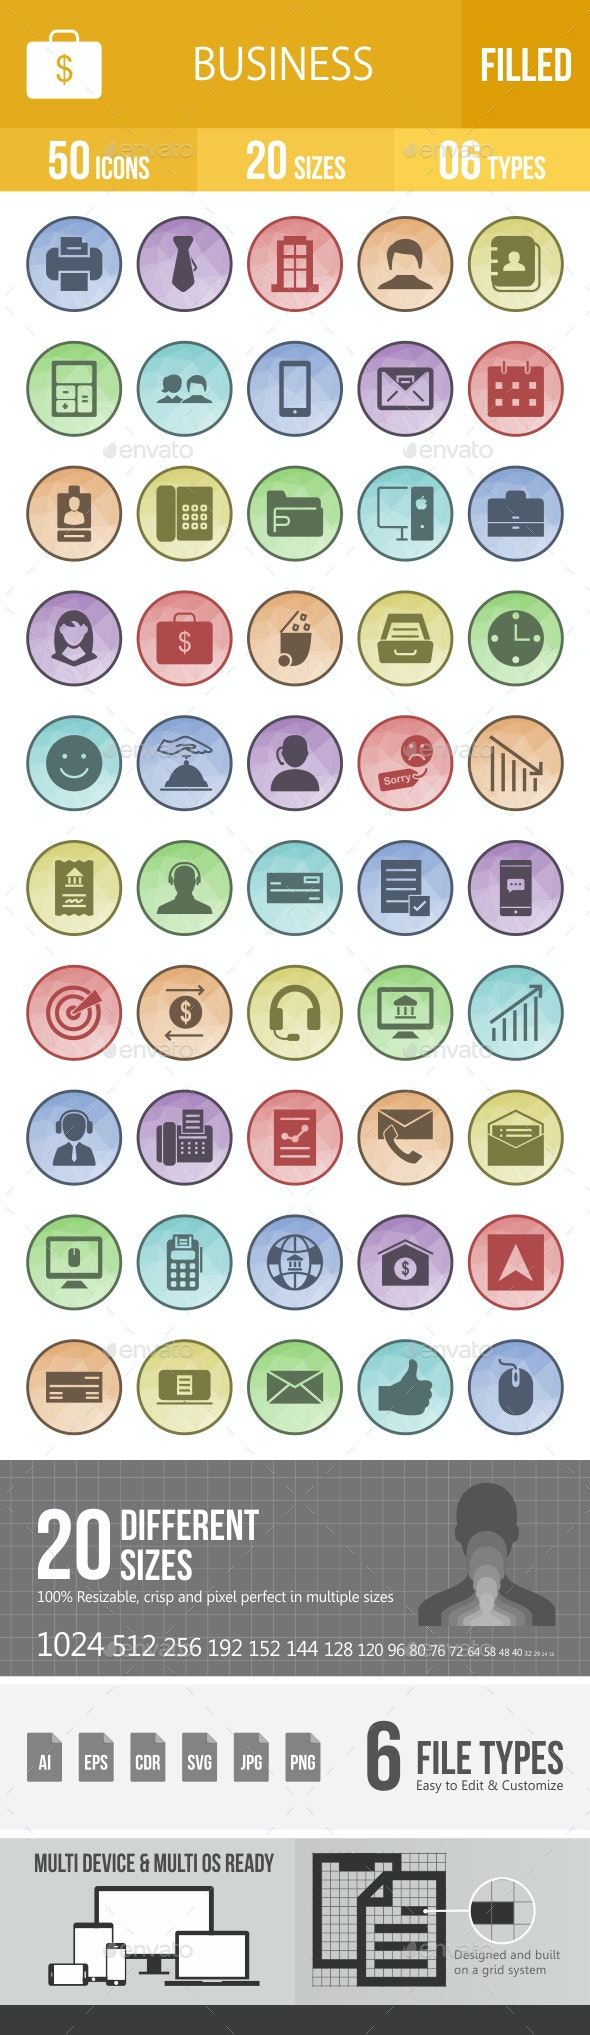 Business Filled Low Poly B/G Icons - Icons